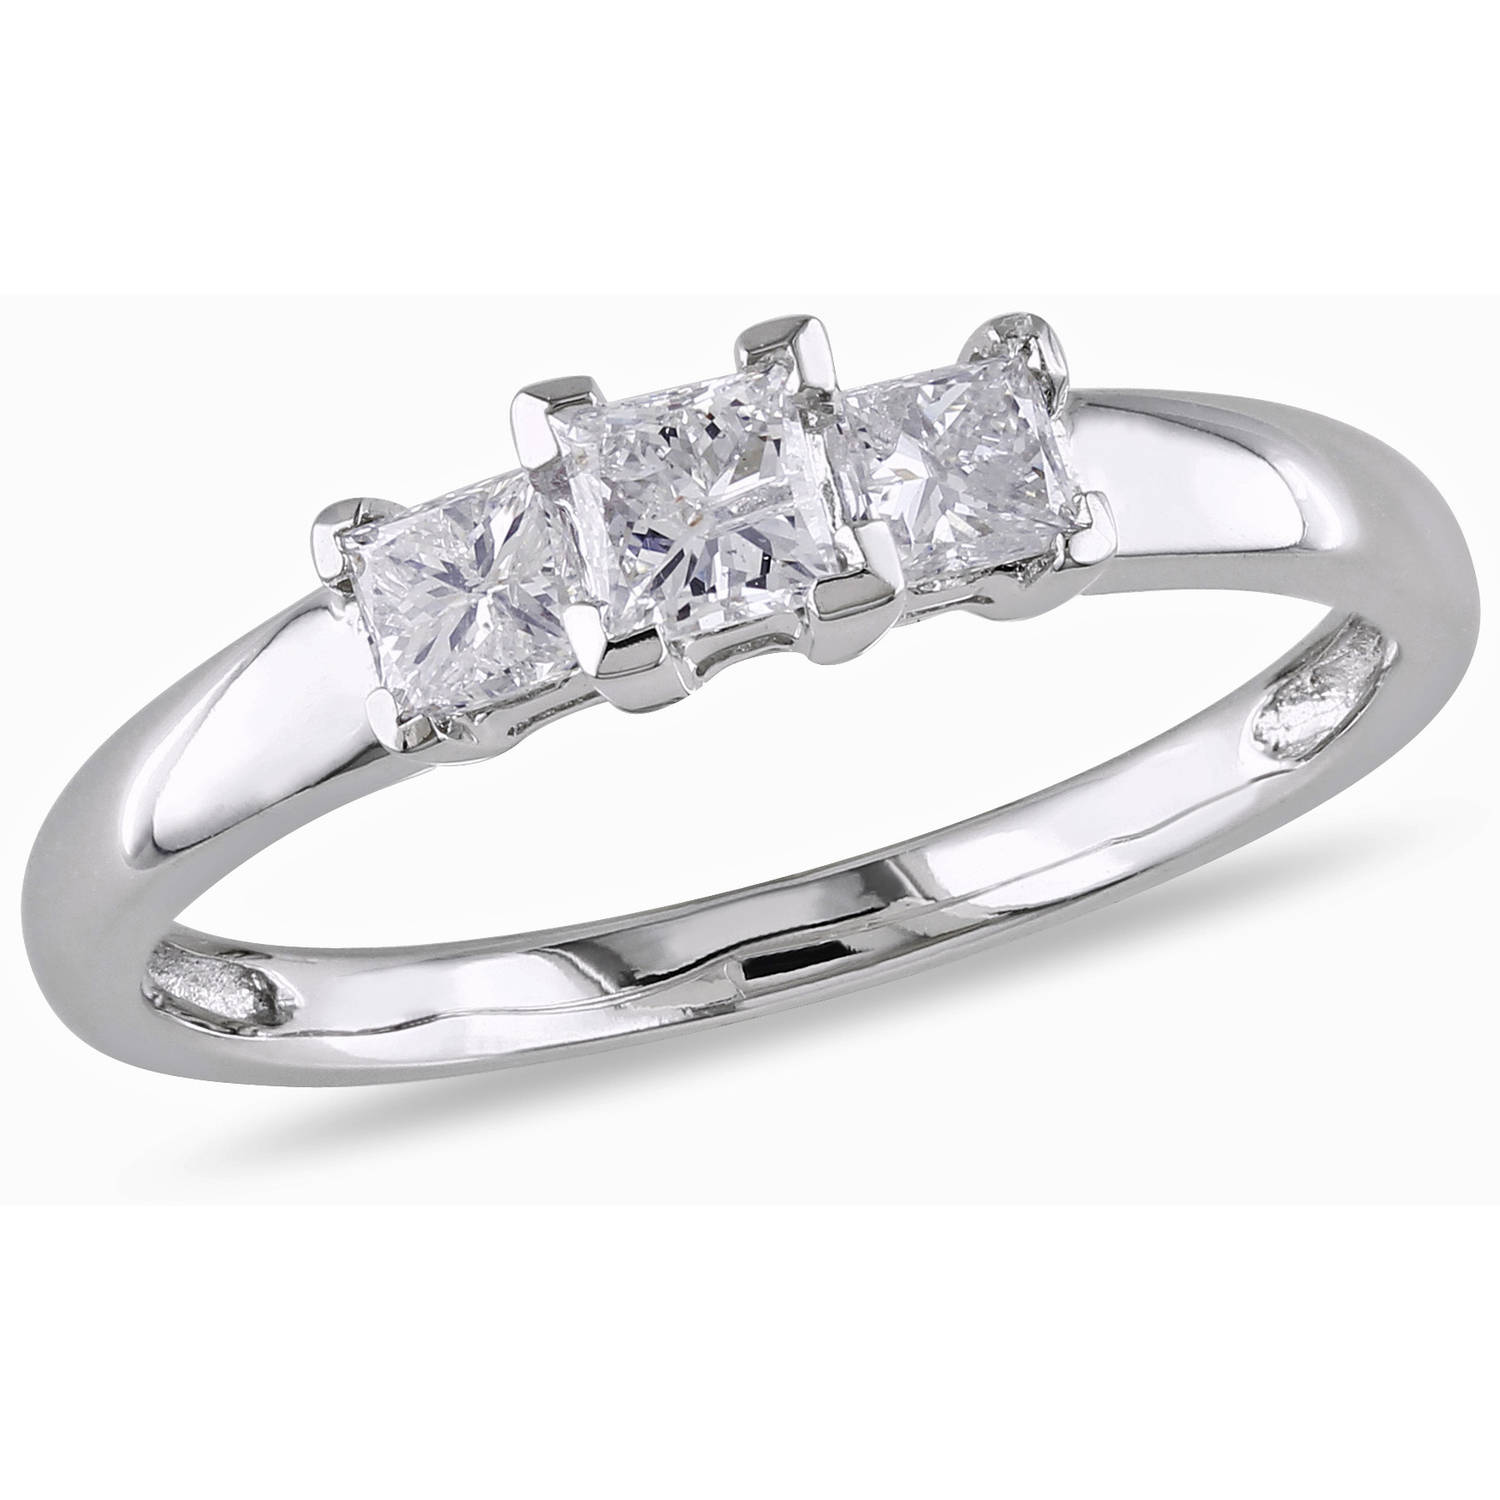 Miabella 1/2 Carat T.W. Princess-Cut Certified Diamond Three Stone 14kt White Gold Engagement Ring